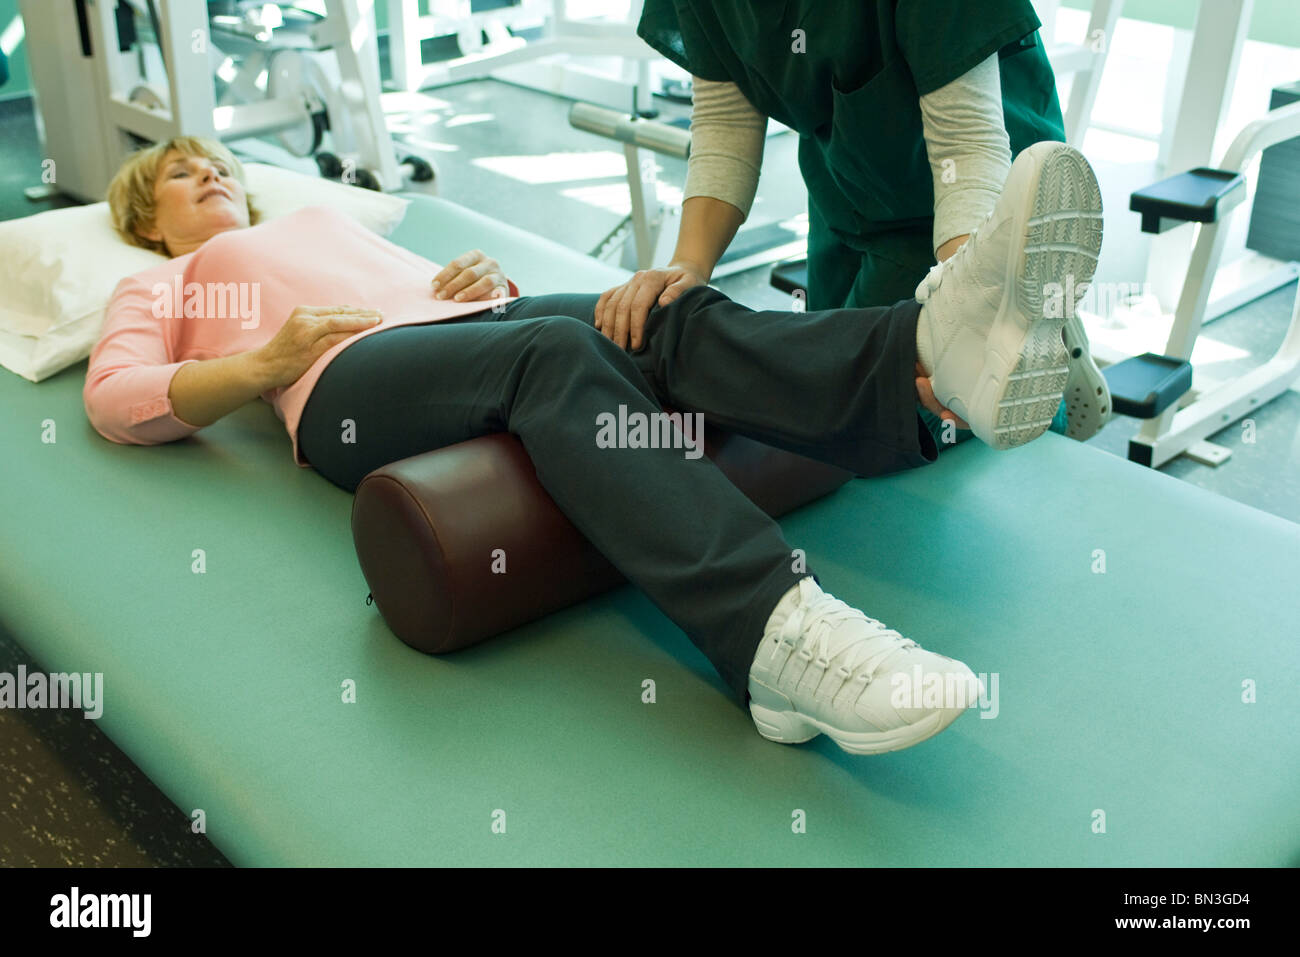 Woman being treated by physical therapist - Stock Image